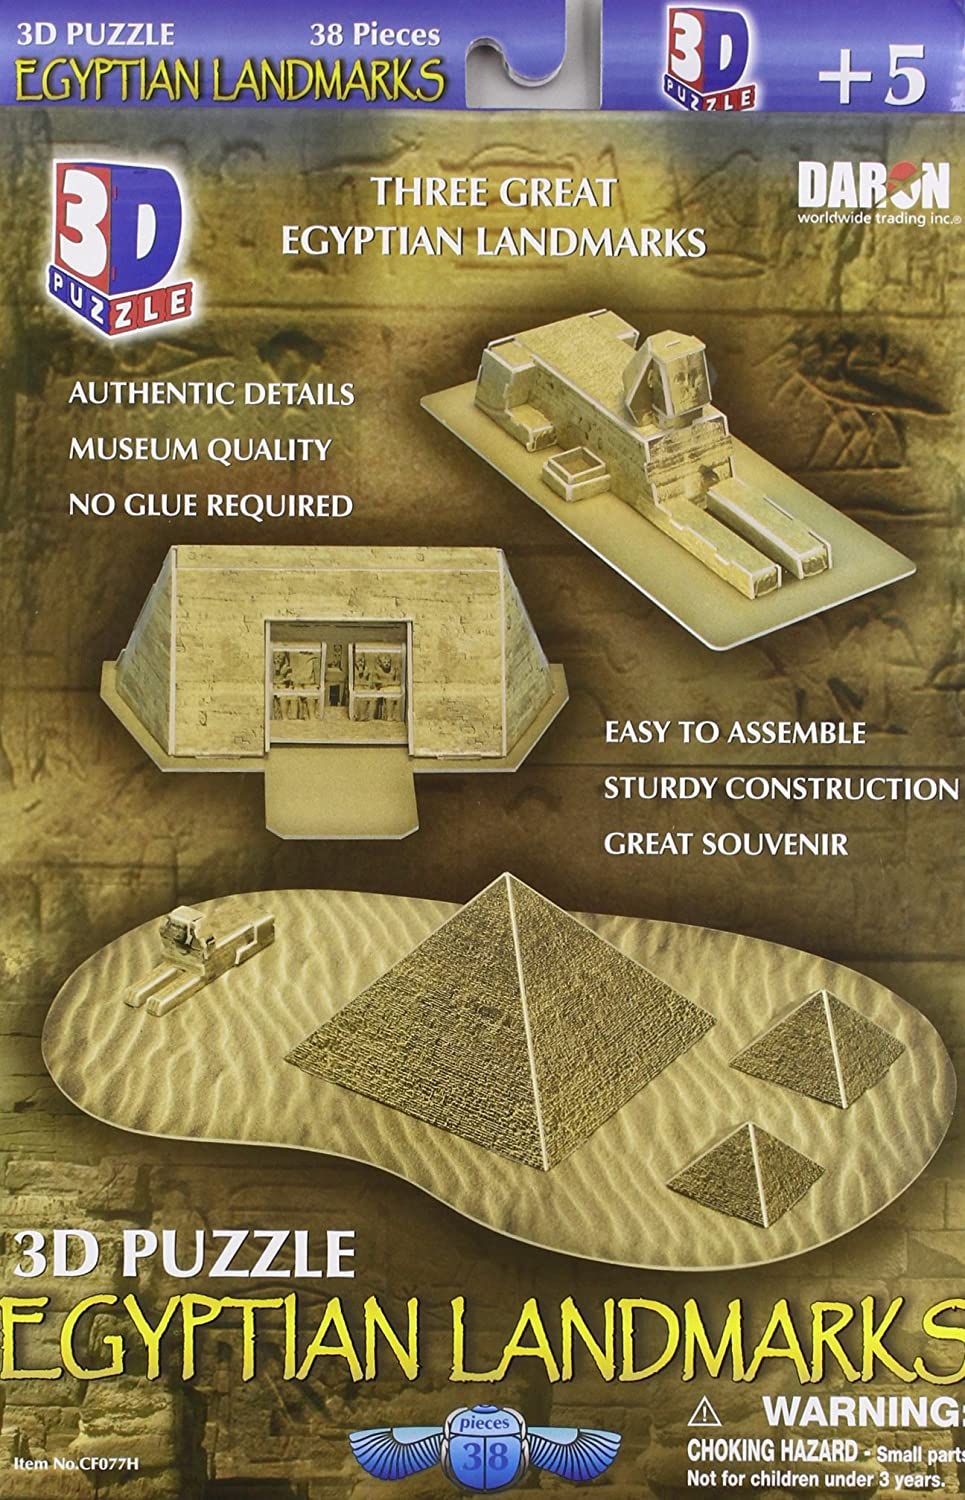 Daron Egyptian Pyramids 3D Puzzle 38-Piece Daron World wide Trading Inc. CF077H